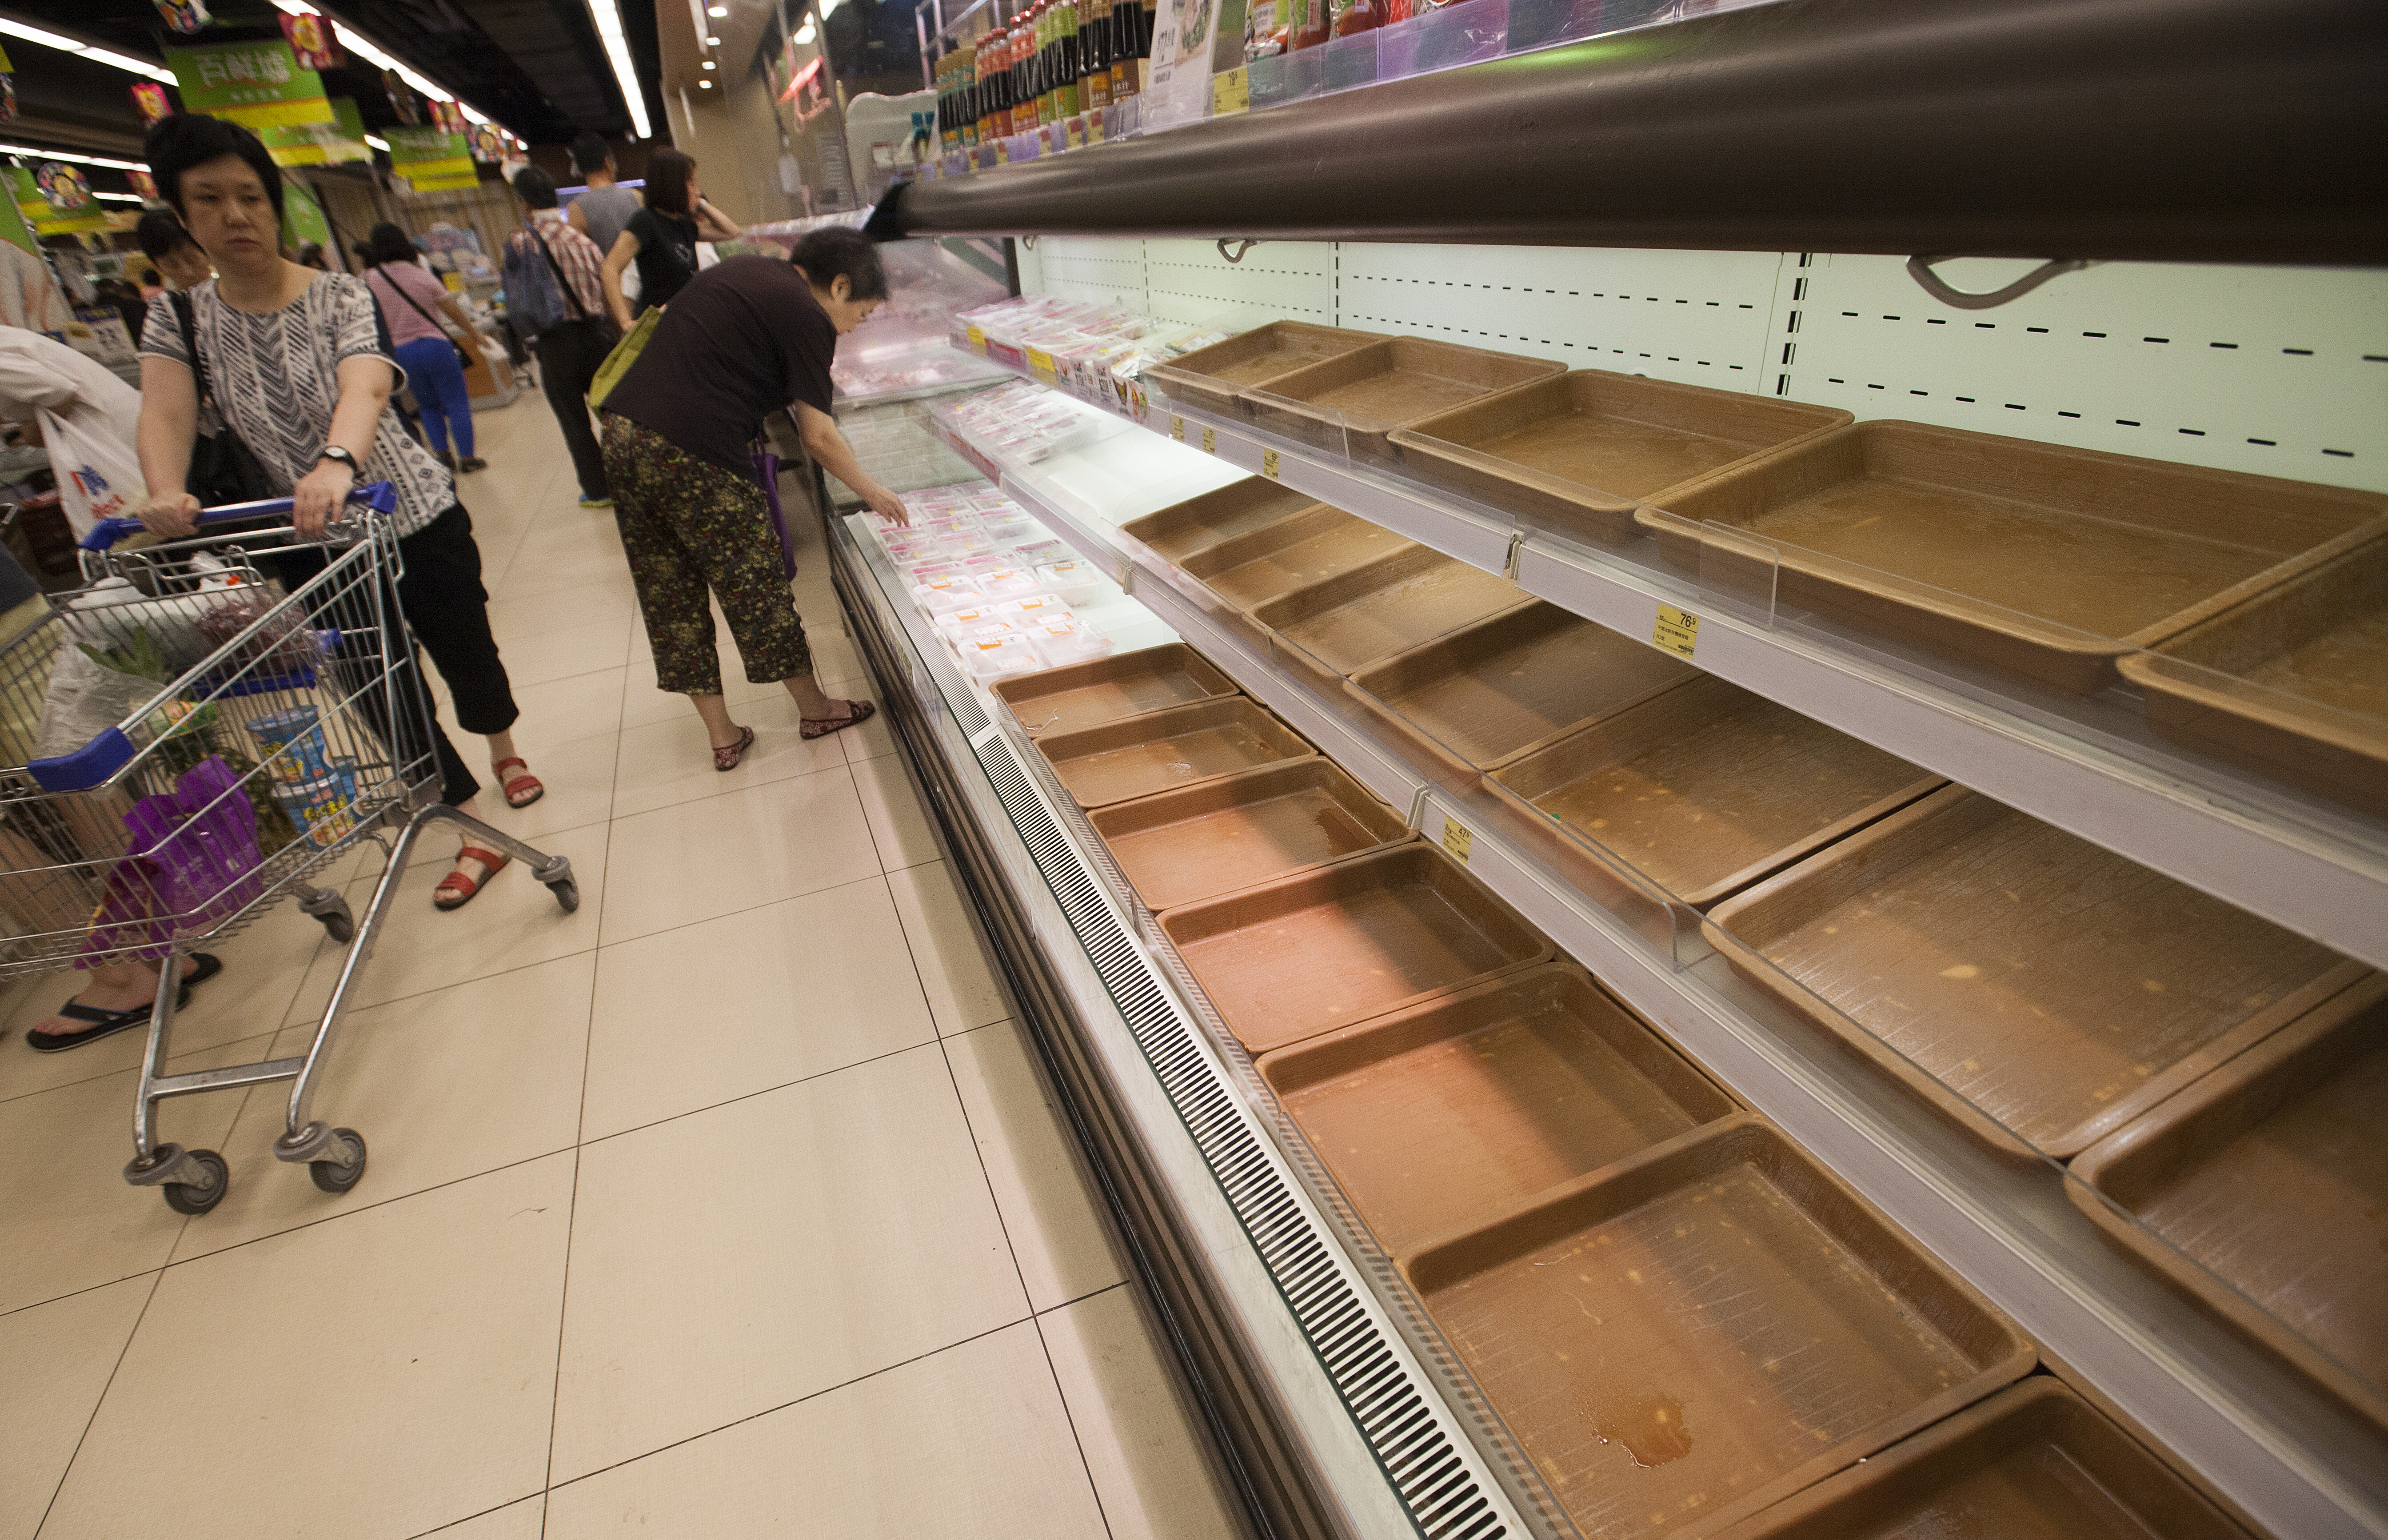 A supermarket shelf usually stocked with fish is stripped bare as people panic buy food supplies in preparation for the arrival of Super Typhoon Mangkhut, in a supermarket in Hang Hau, Tseung Kwan O, New Territories, Hong Kong, China, 15 September 2018. Experts say Super Typhoon Mangkhut will be the most powerful tropical storms to hit Hong Kong in decades.